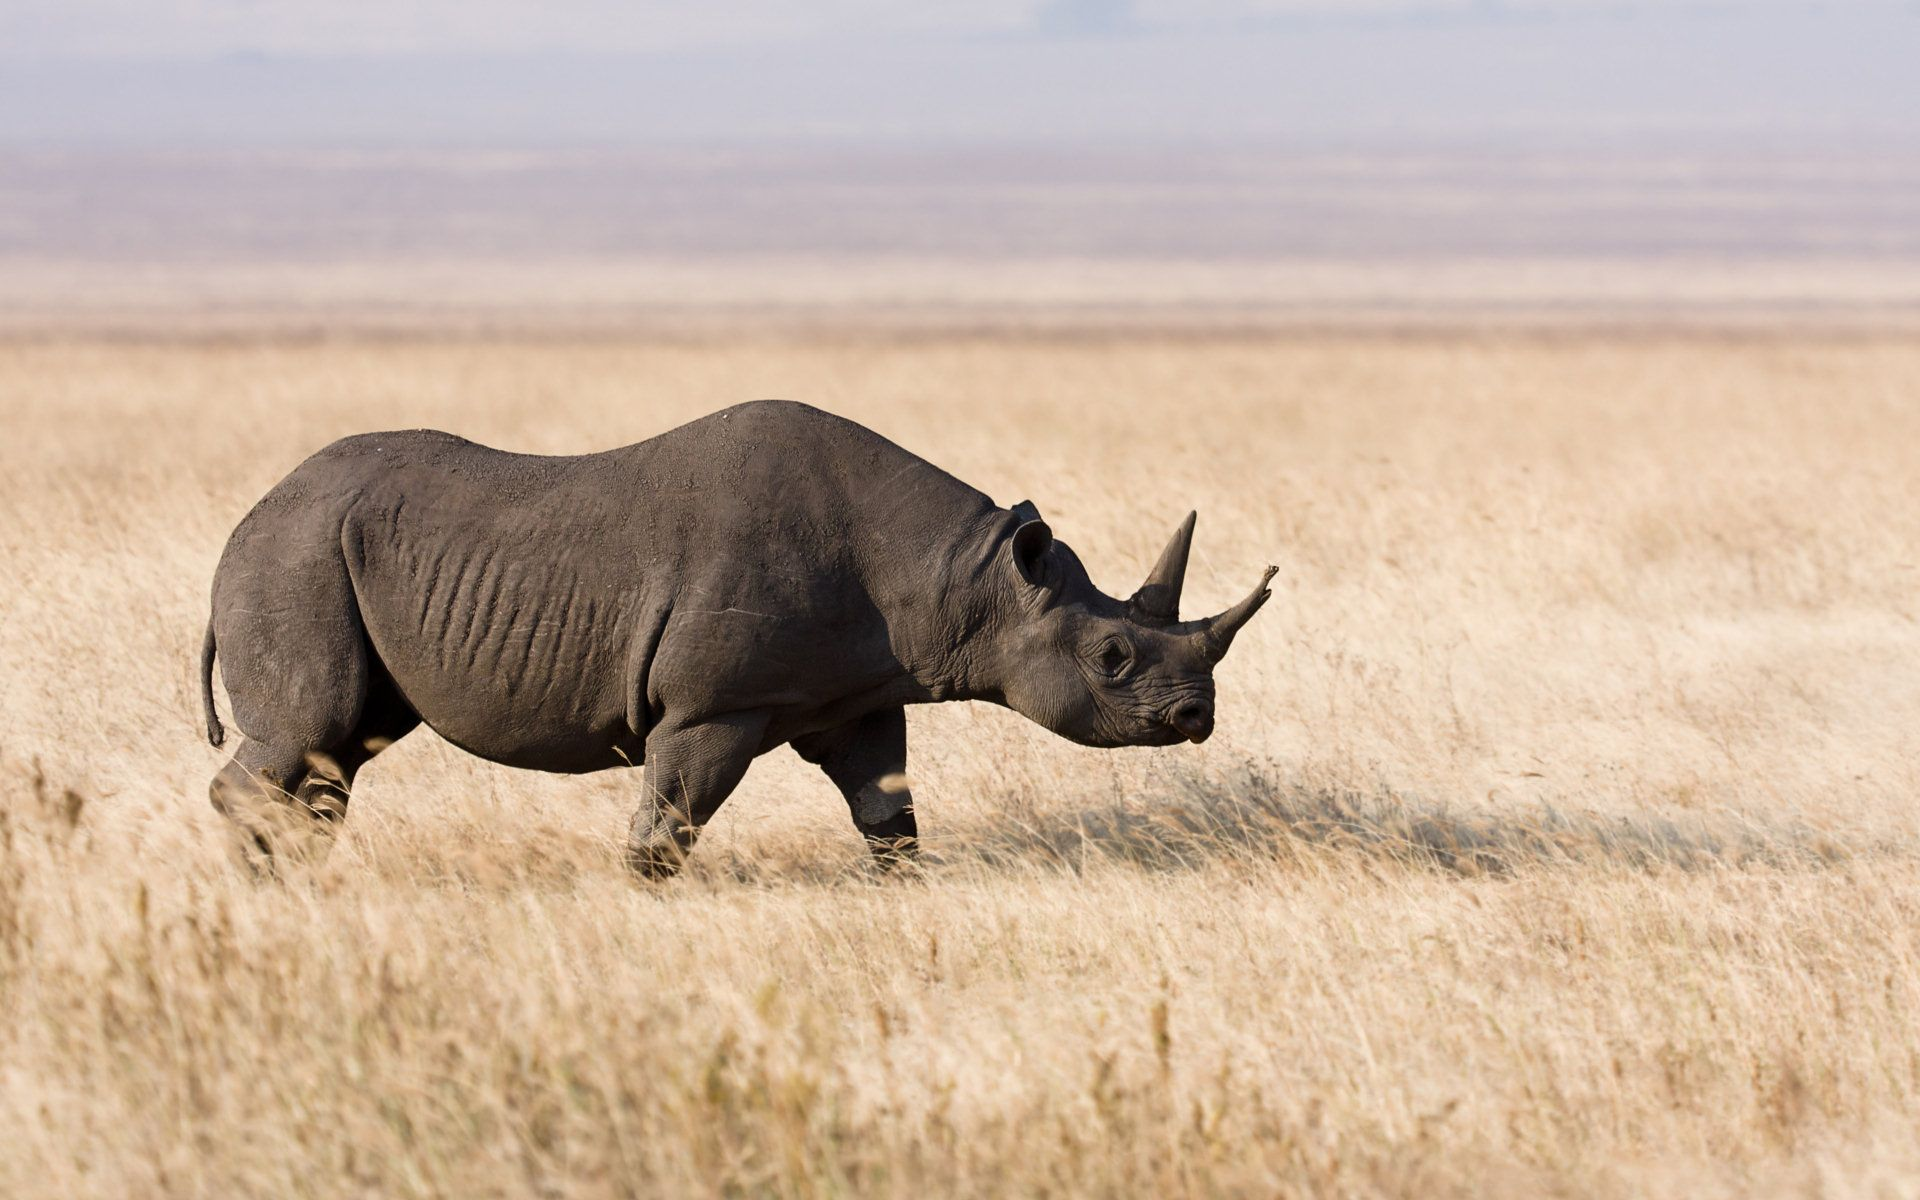 Rhino Wallpapers, Pictures, Image